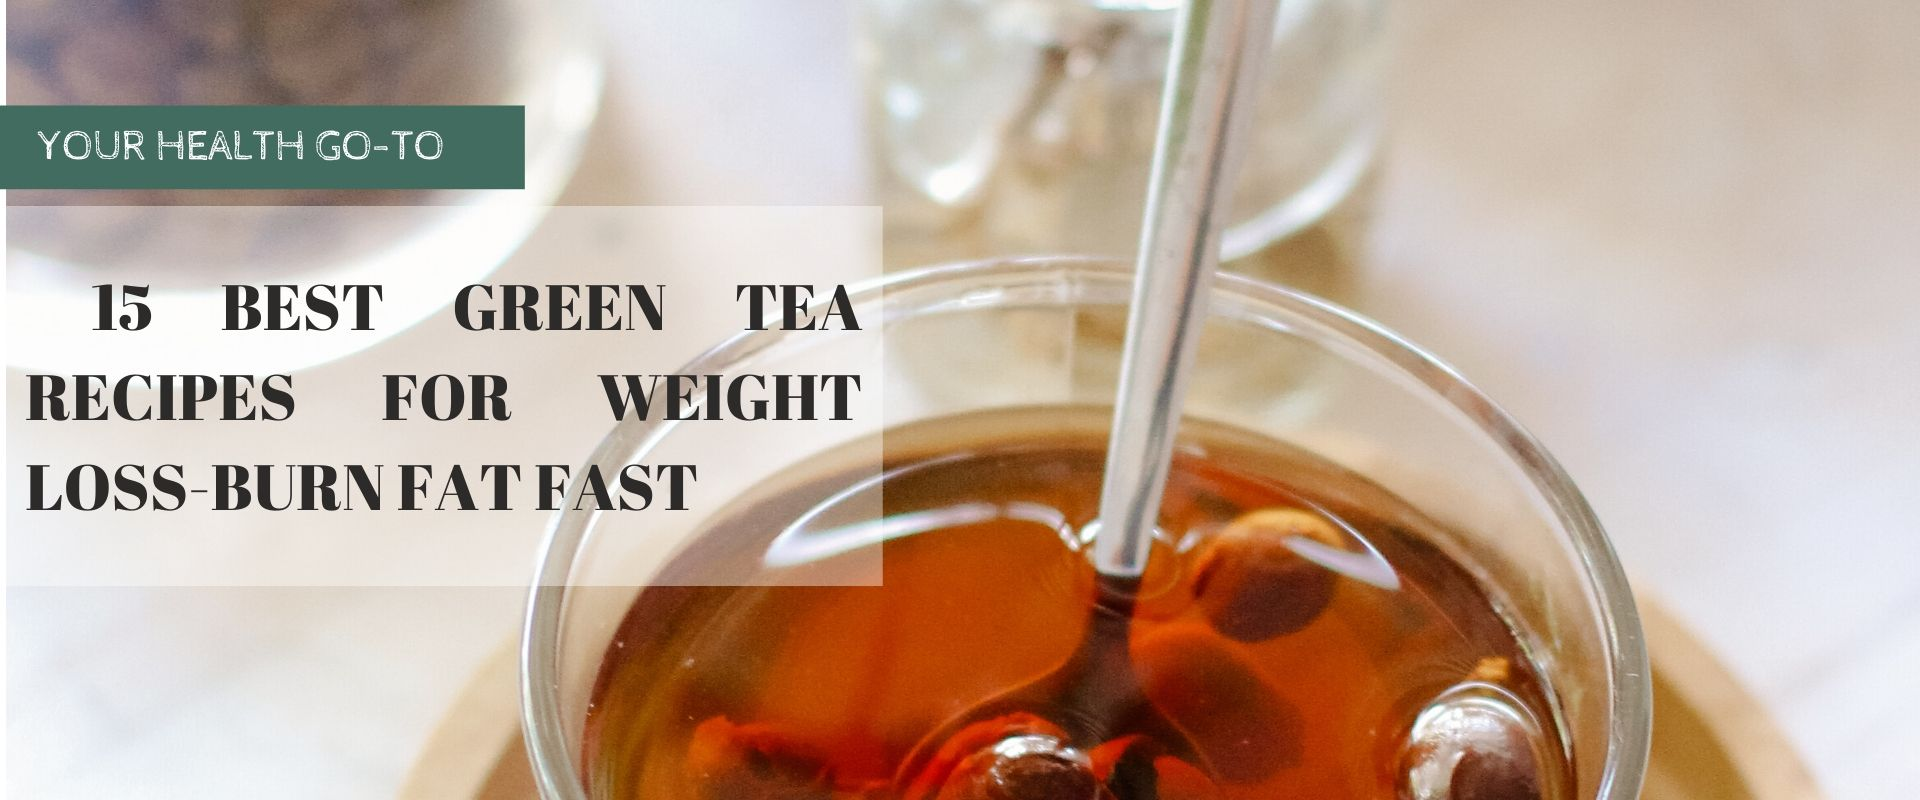 15 Best Green Tea Recipes for Weight Loss-Burn Fat Fast